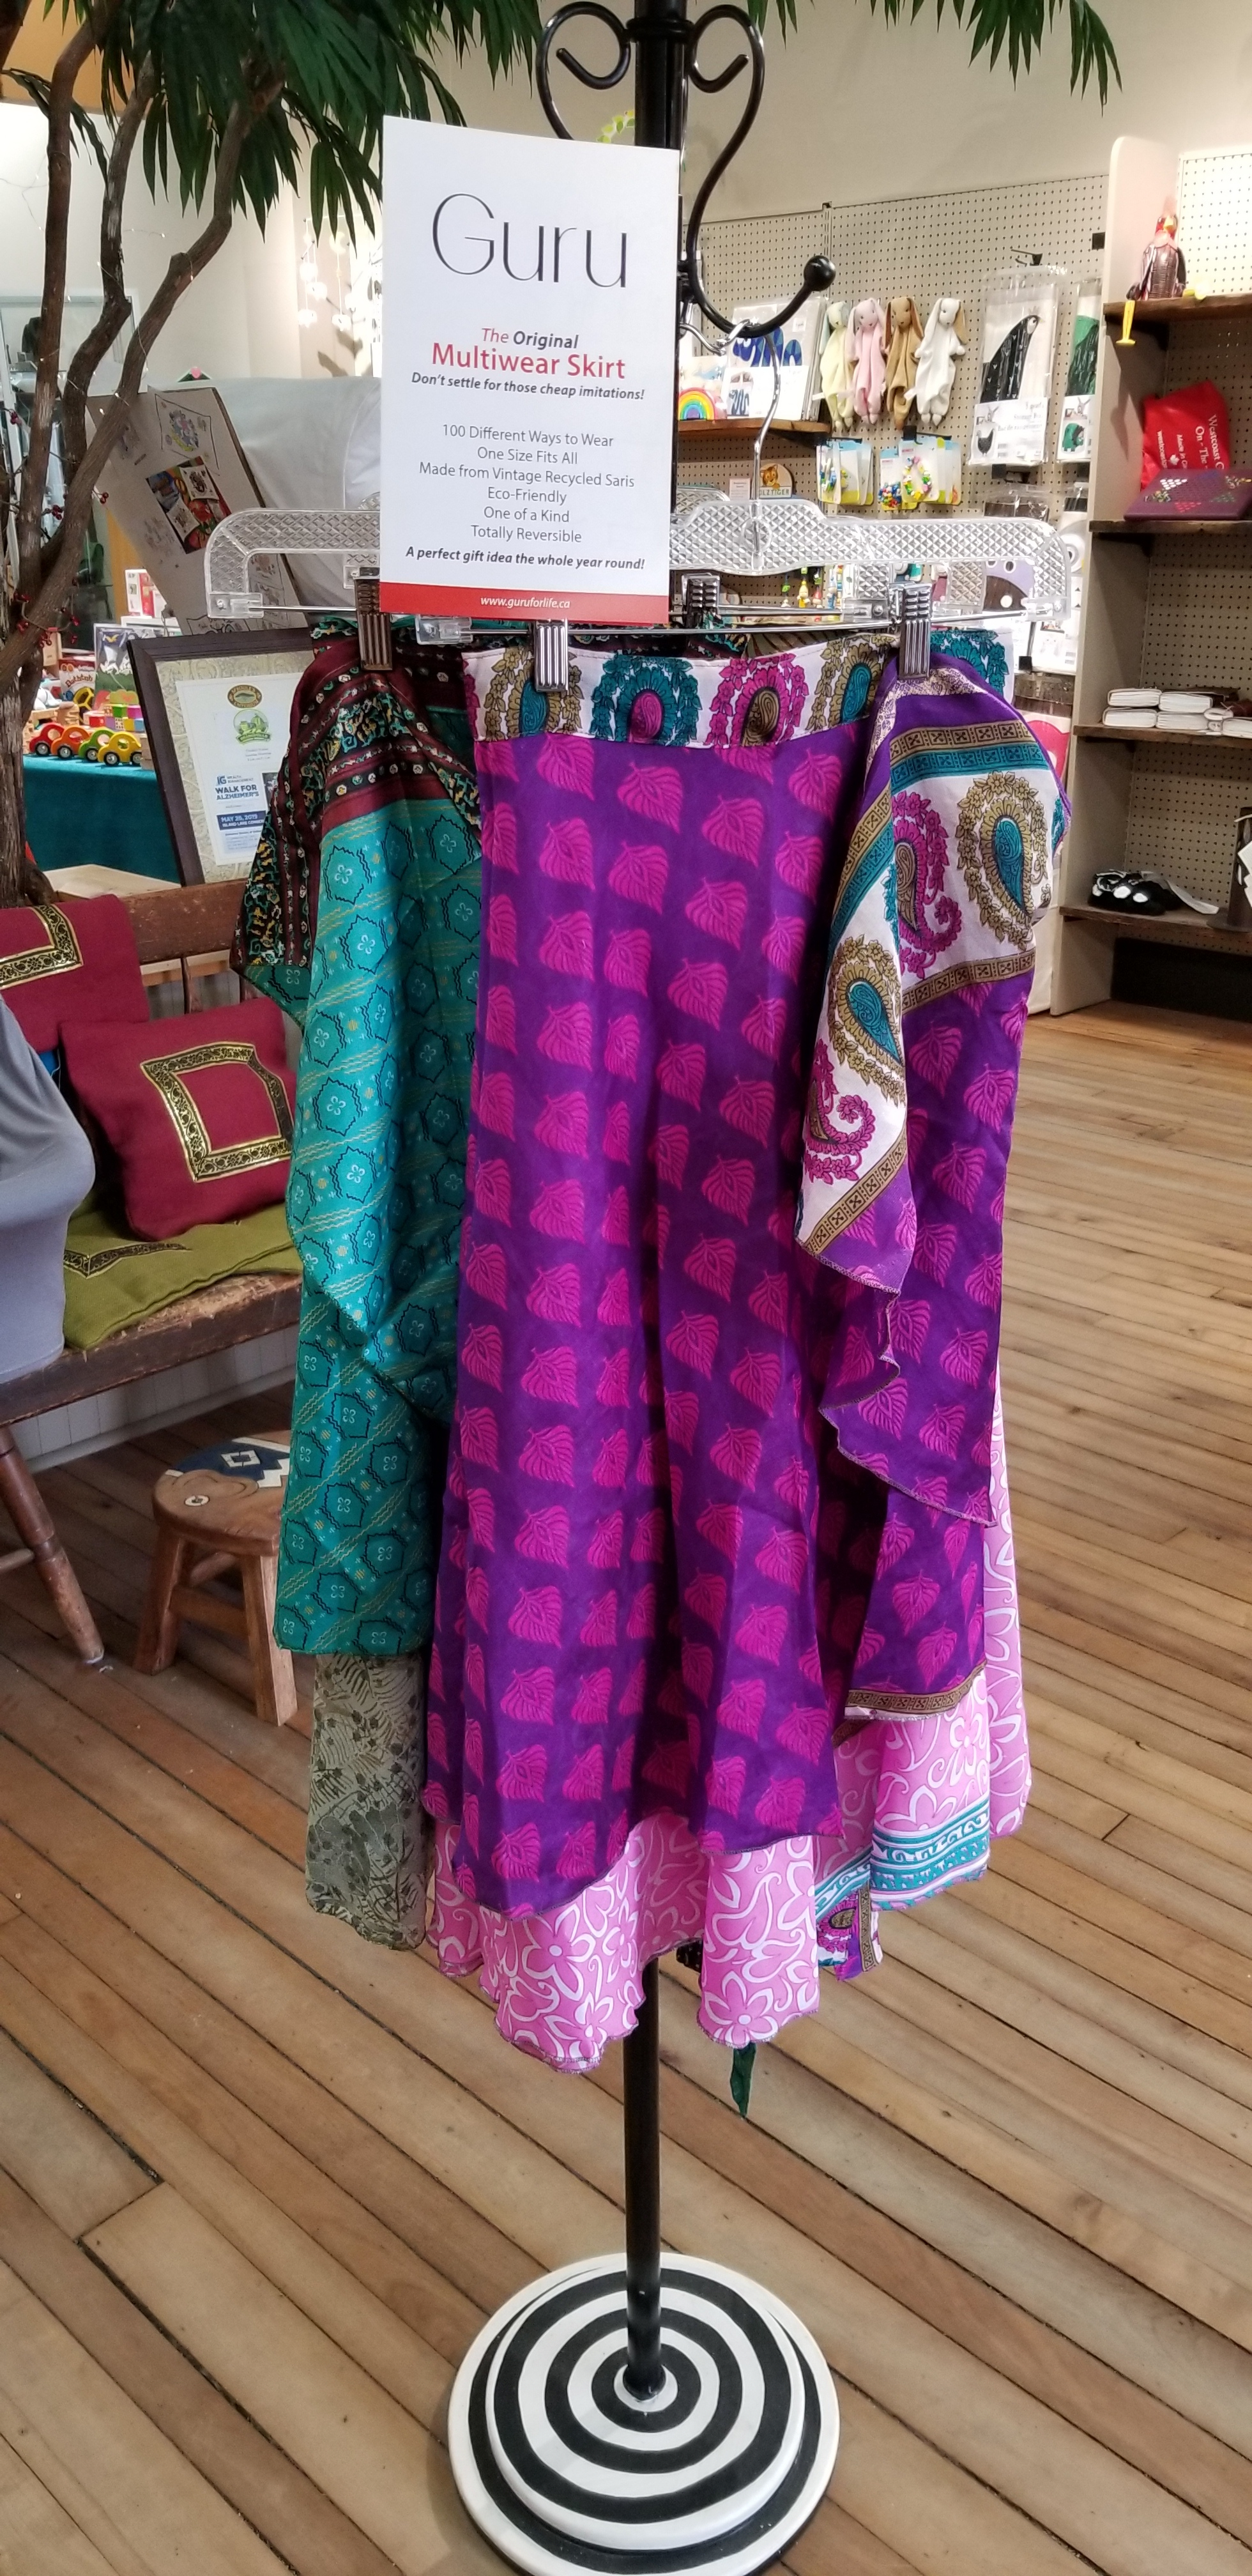 9bfadfa0172f1 News from Sproule's — Sproule's Emporium